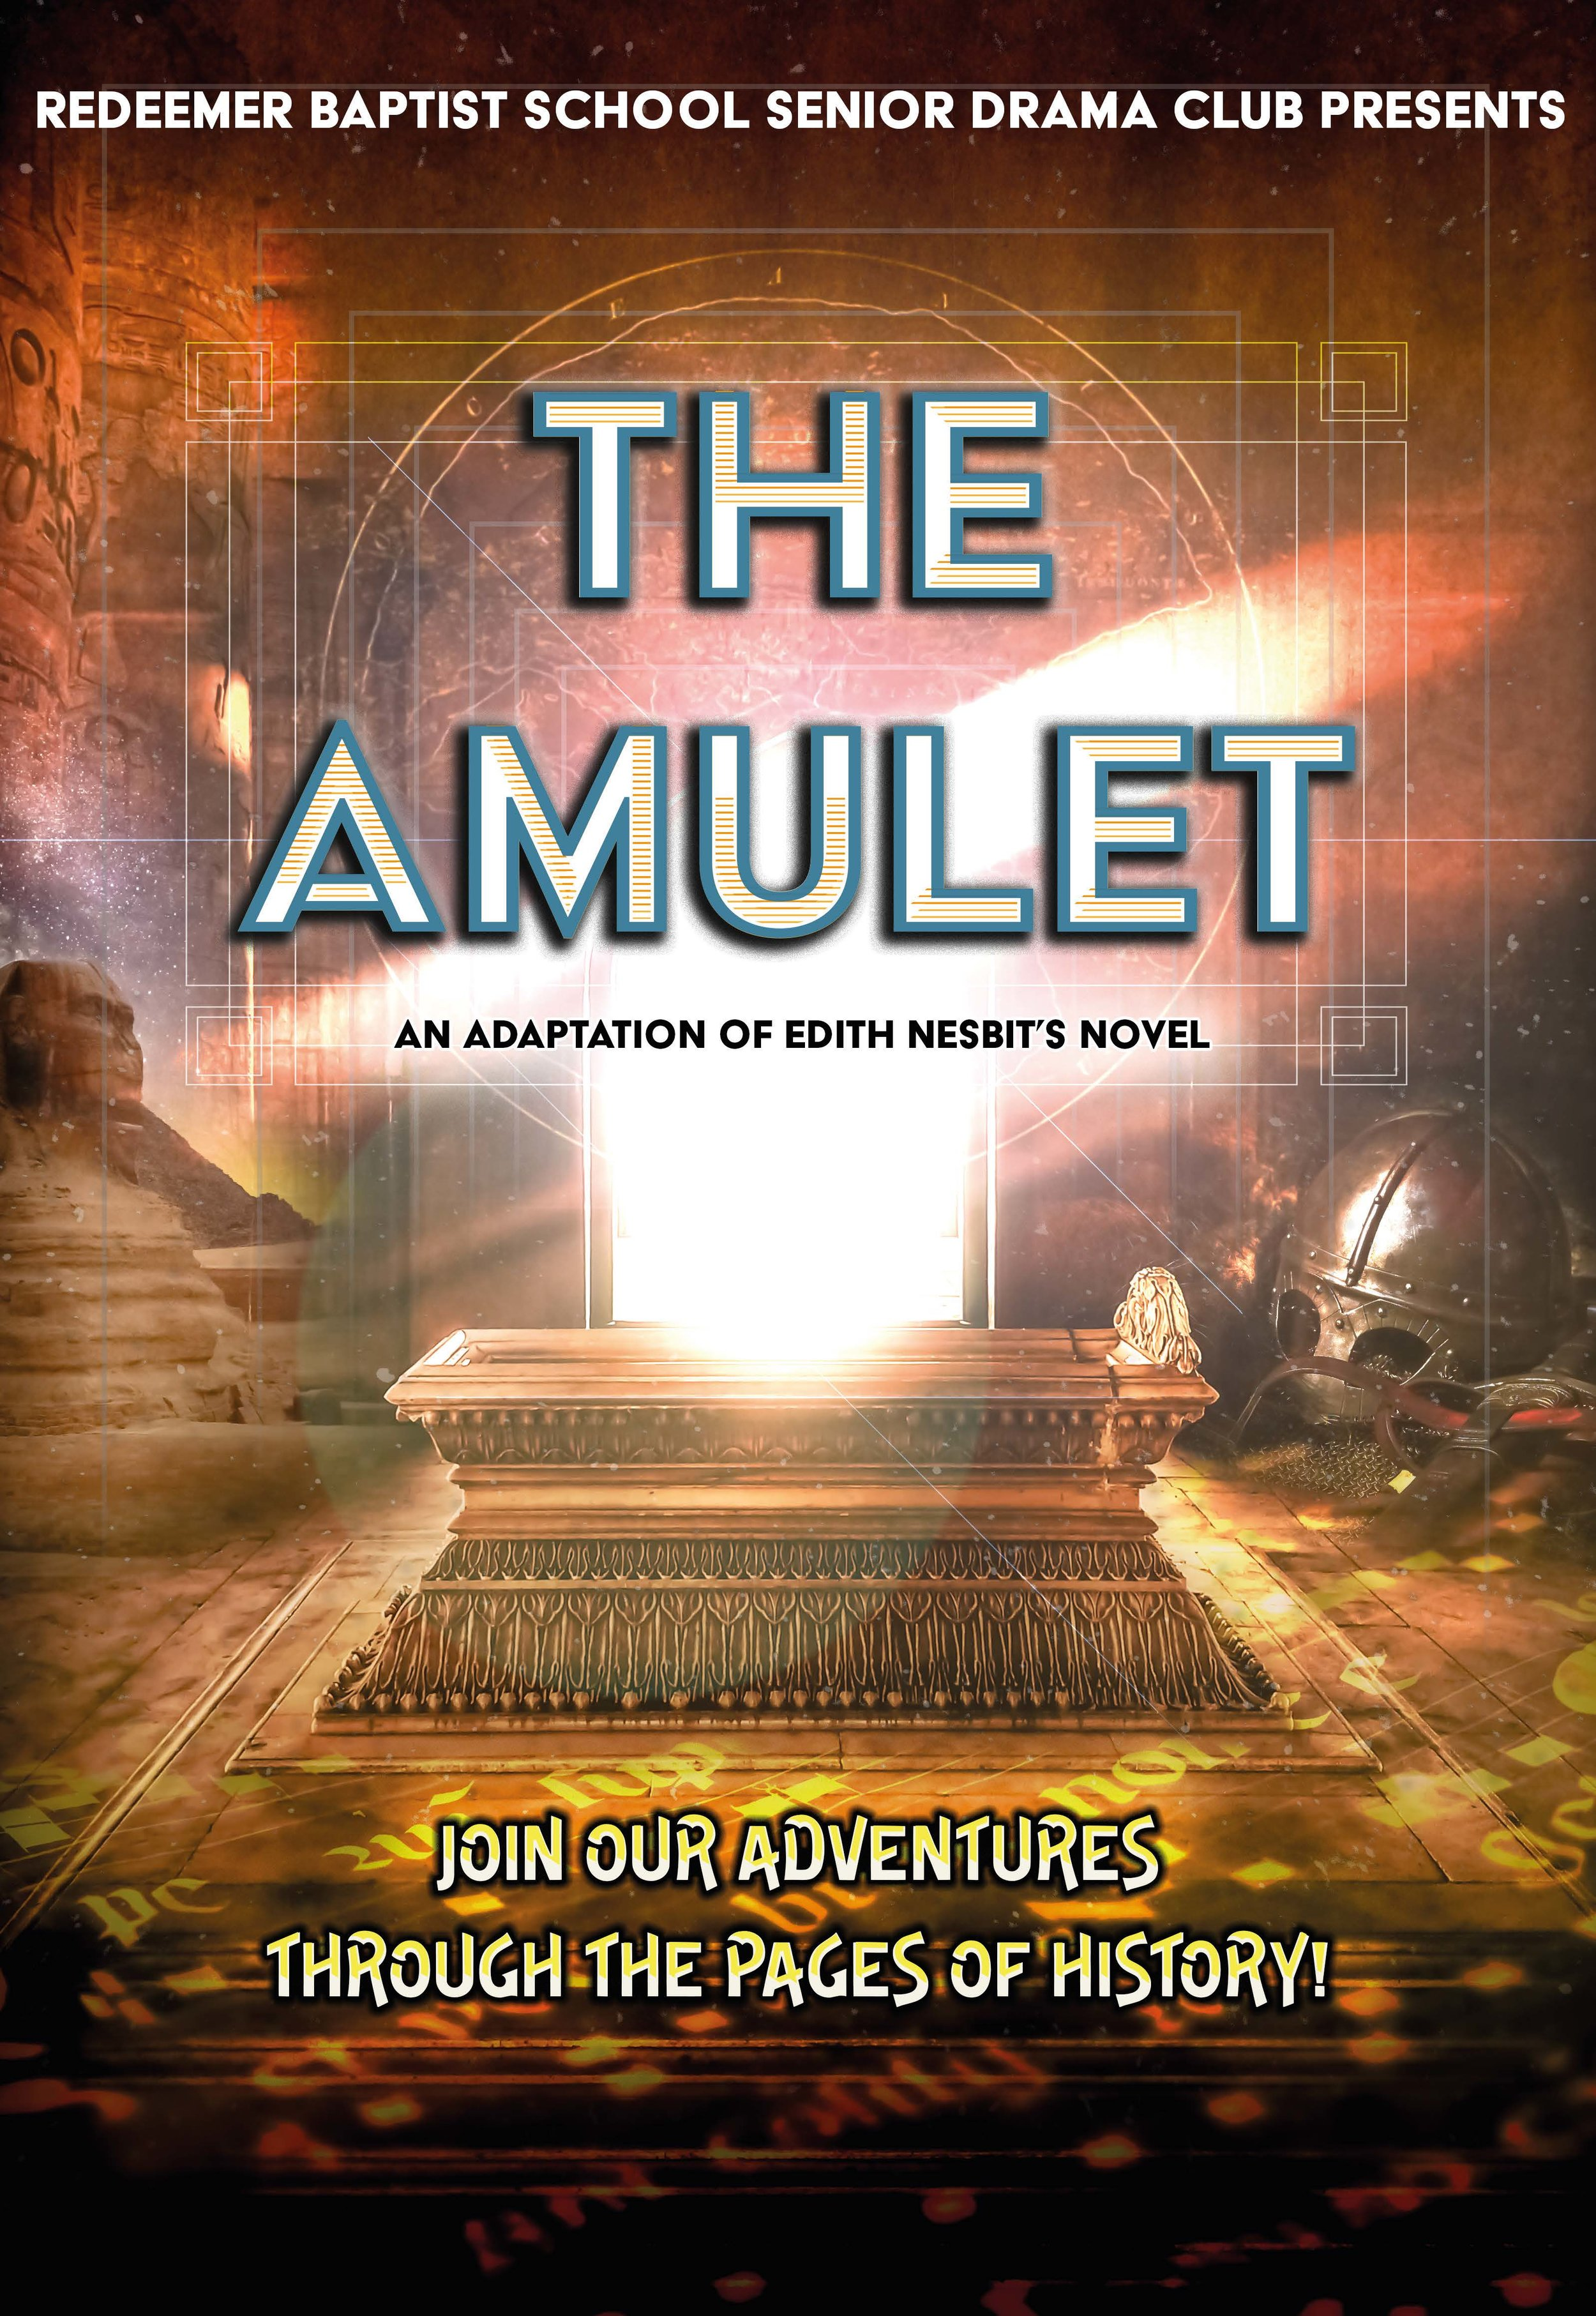 TheAmulet.jpg